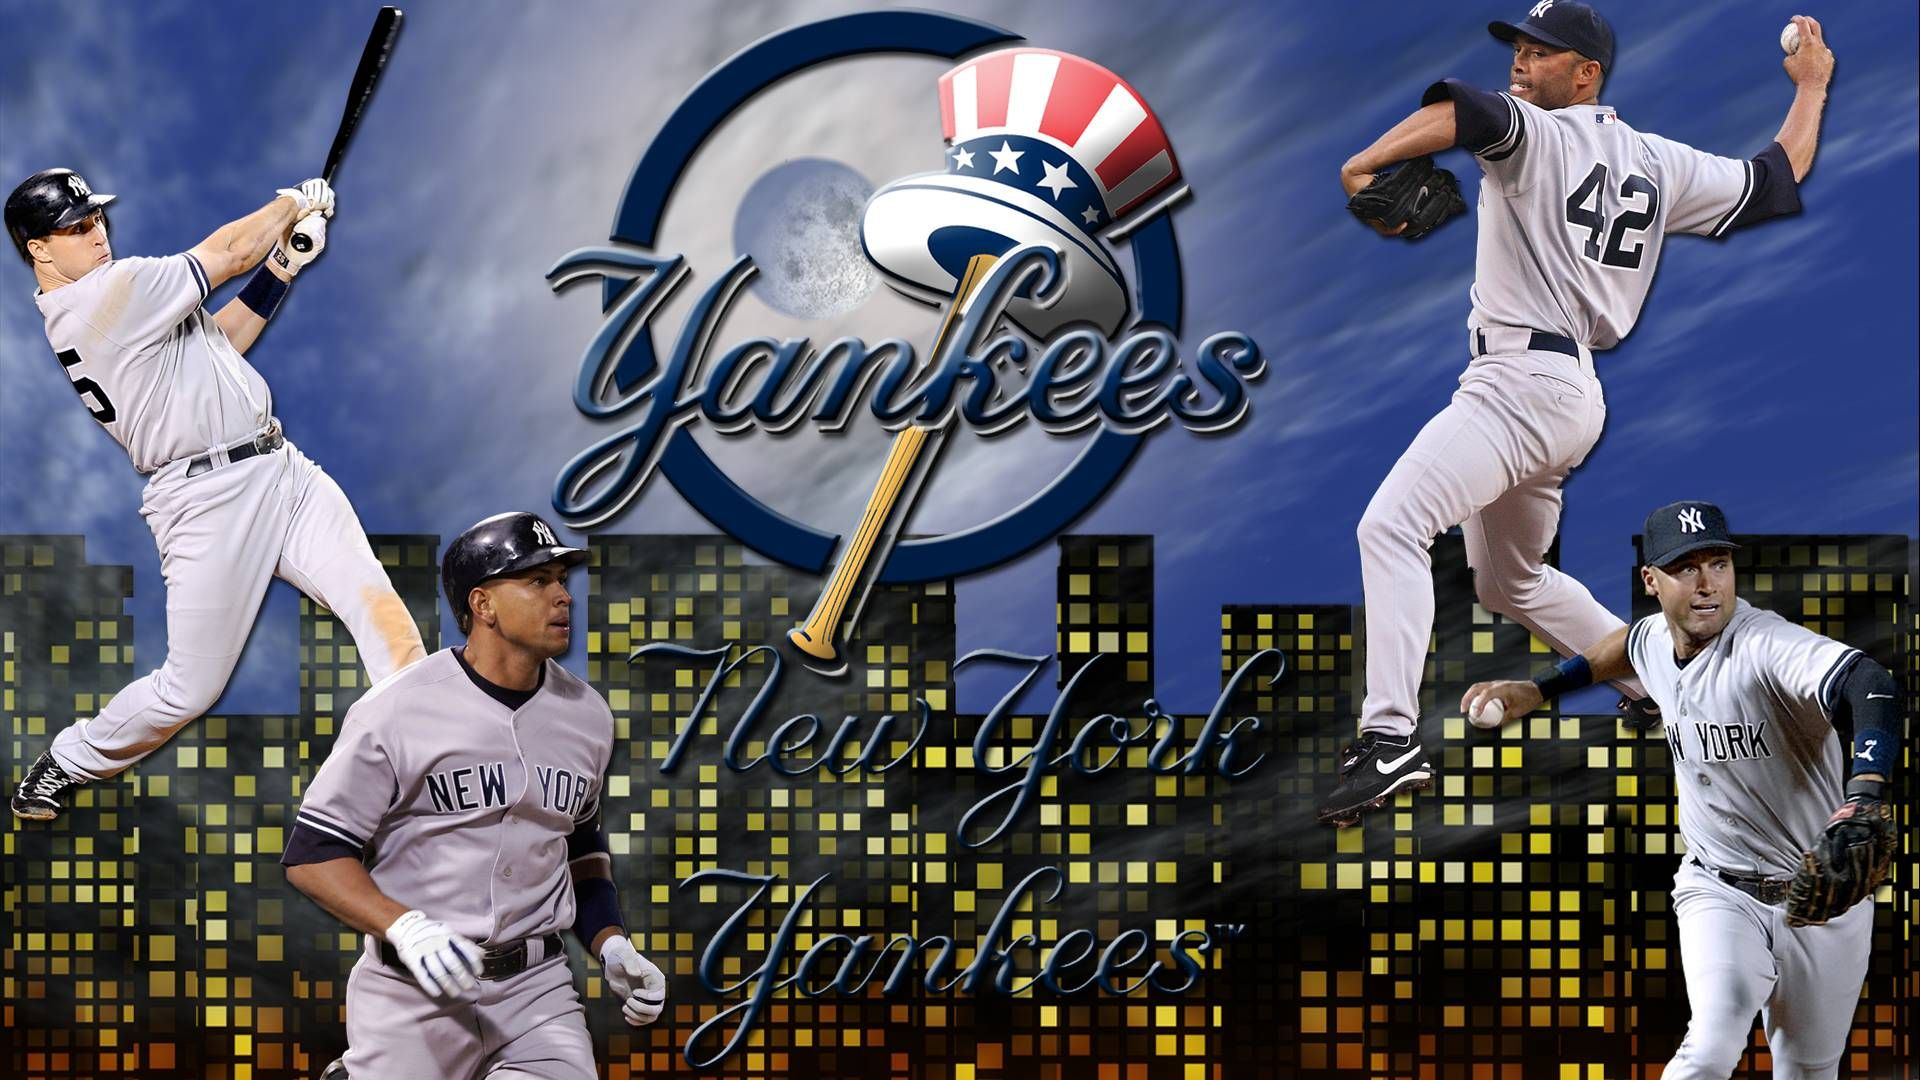 New York Yankee New York Yankees High Definition Wallpapers 1080p New York Yankees Tickets New York Yankees Yankees